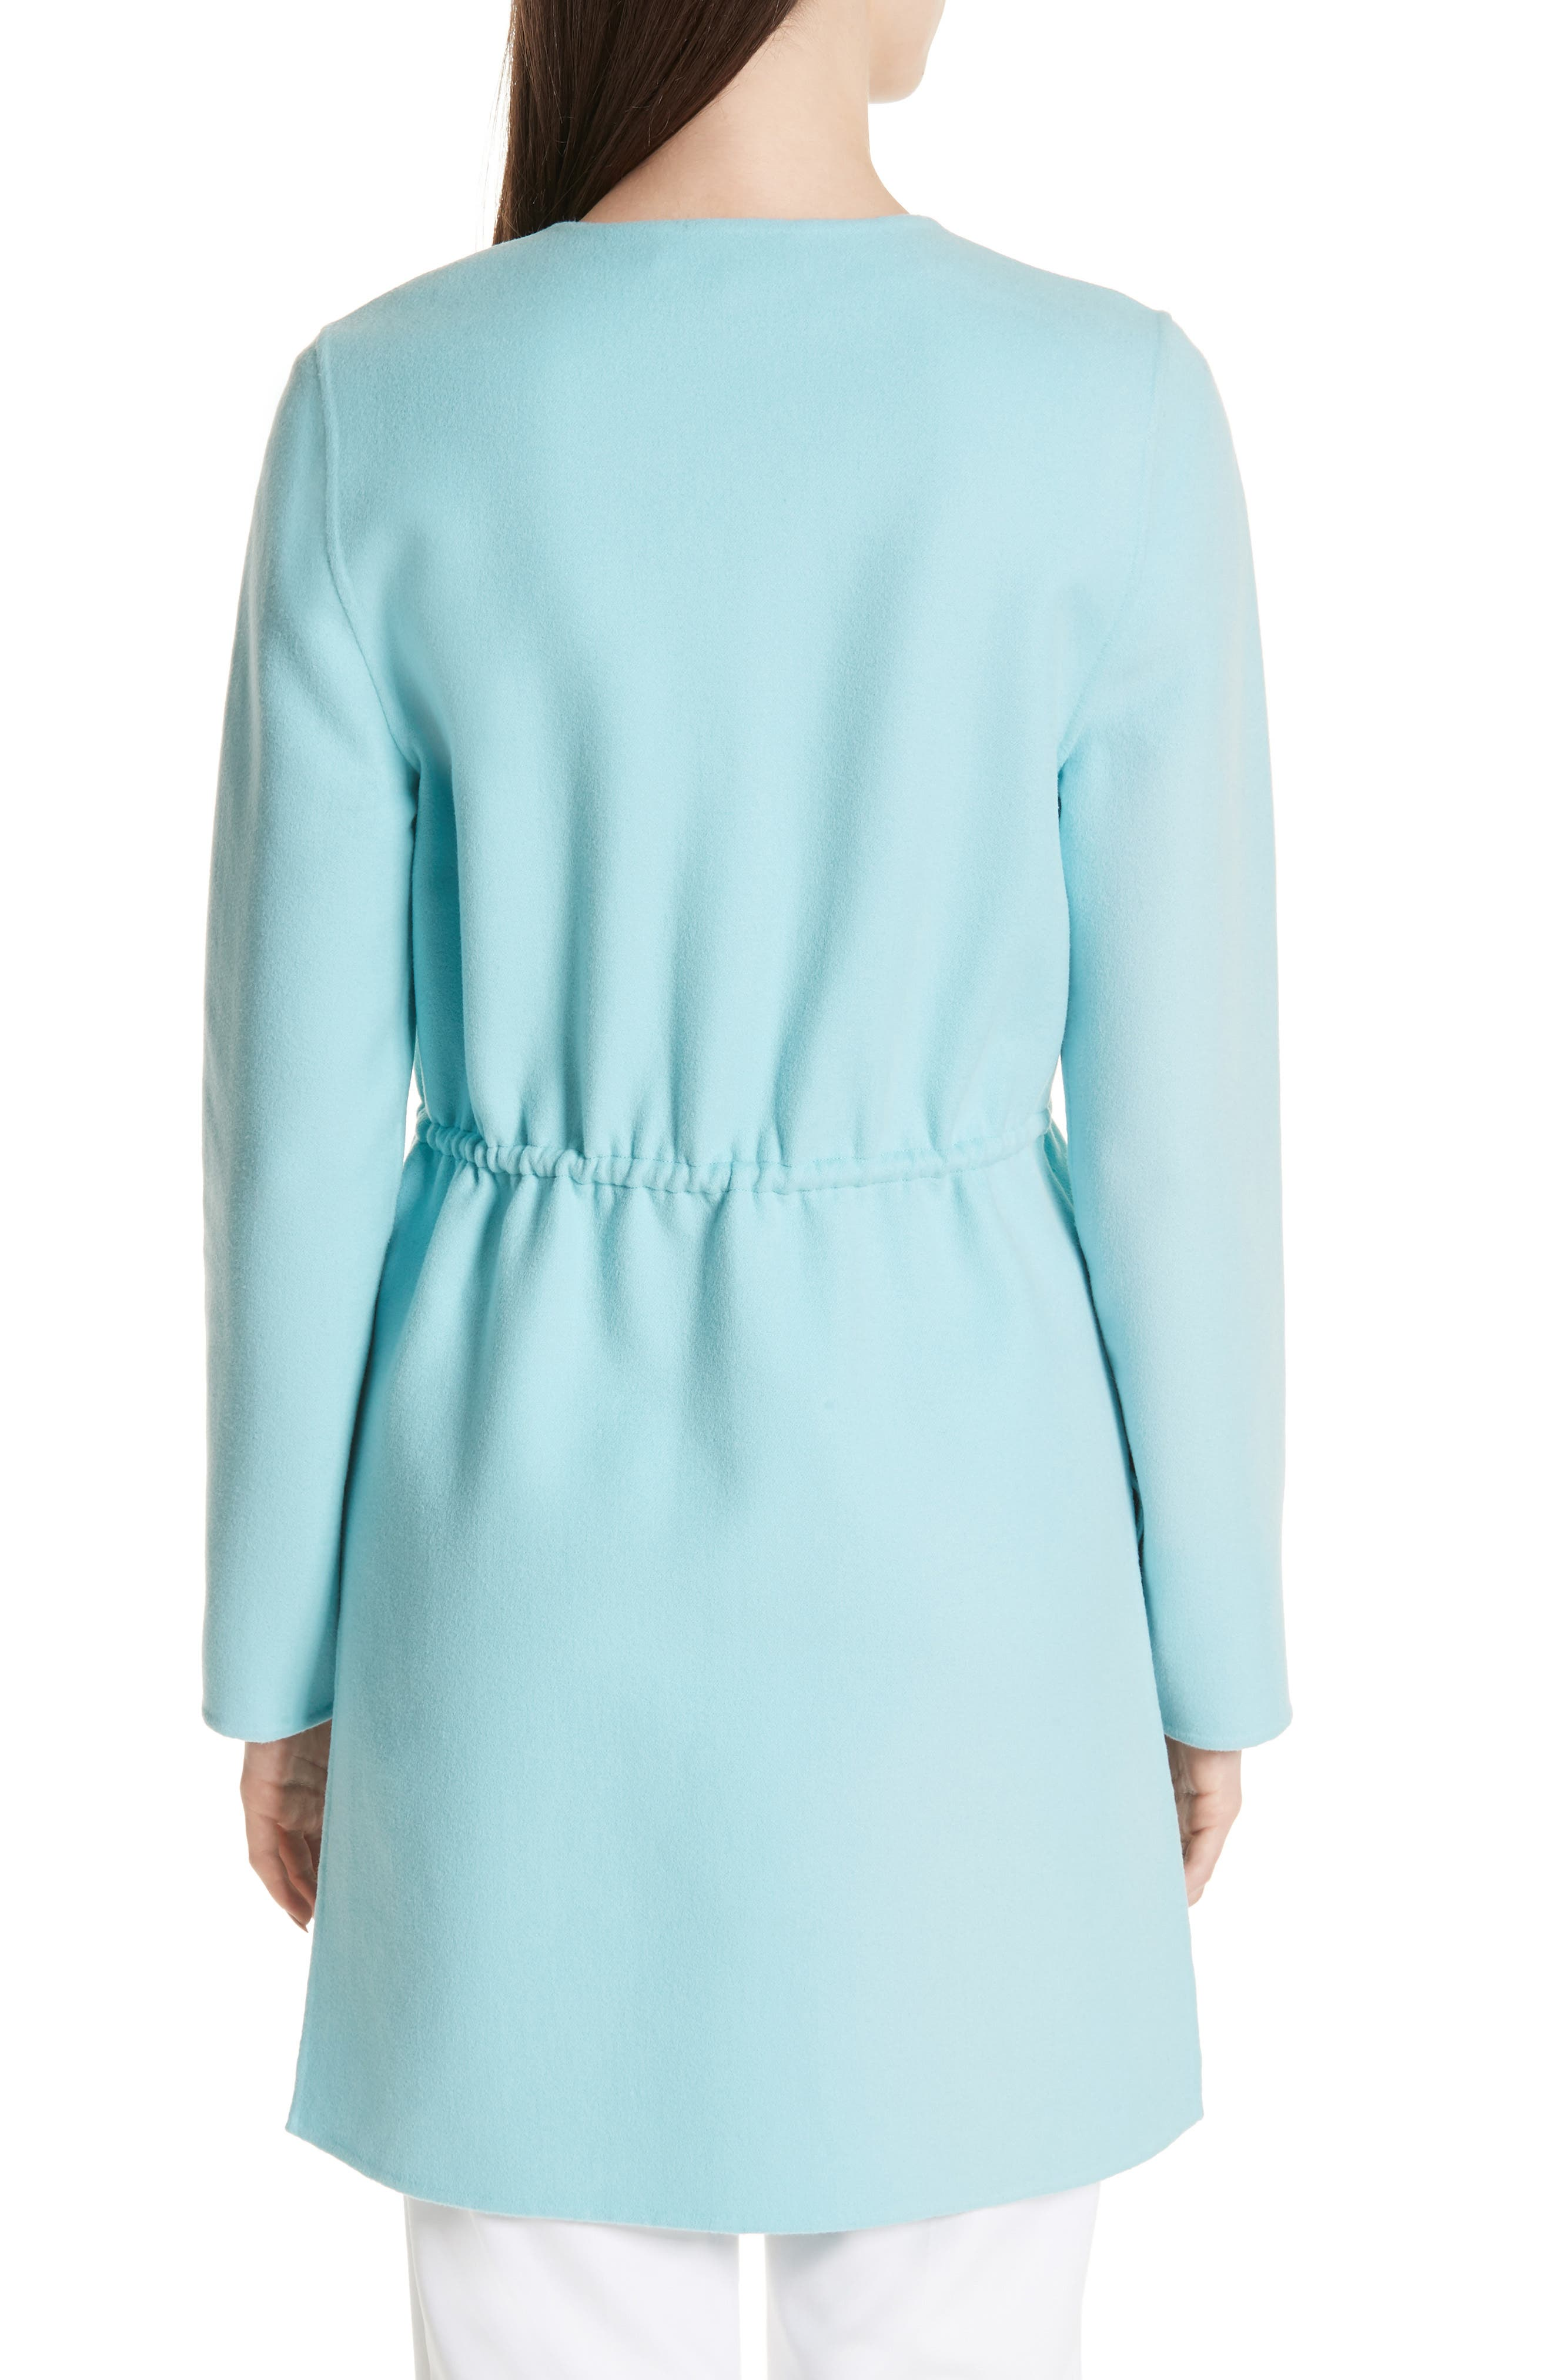 ST. JOHN COLLECTION,                             Double Face Wool & Cashmere Jacket,                             Alternate thumbnail 2, color,                             AQUAMARINE